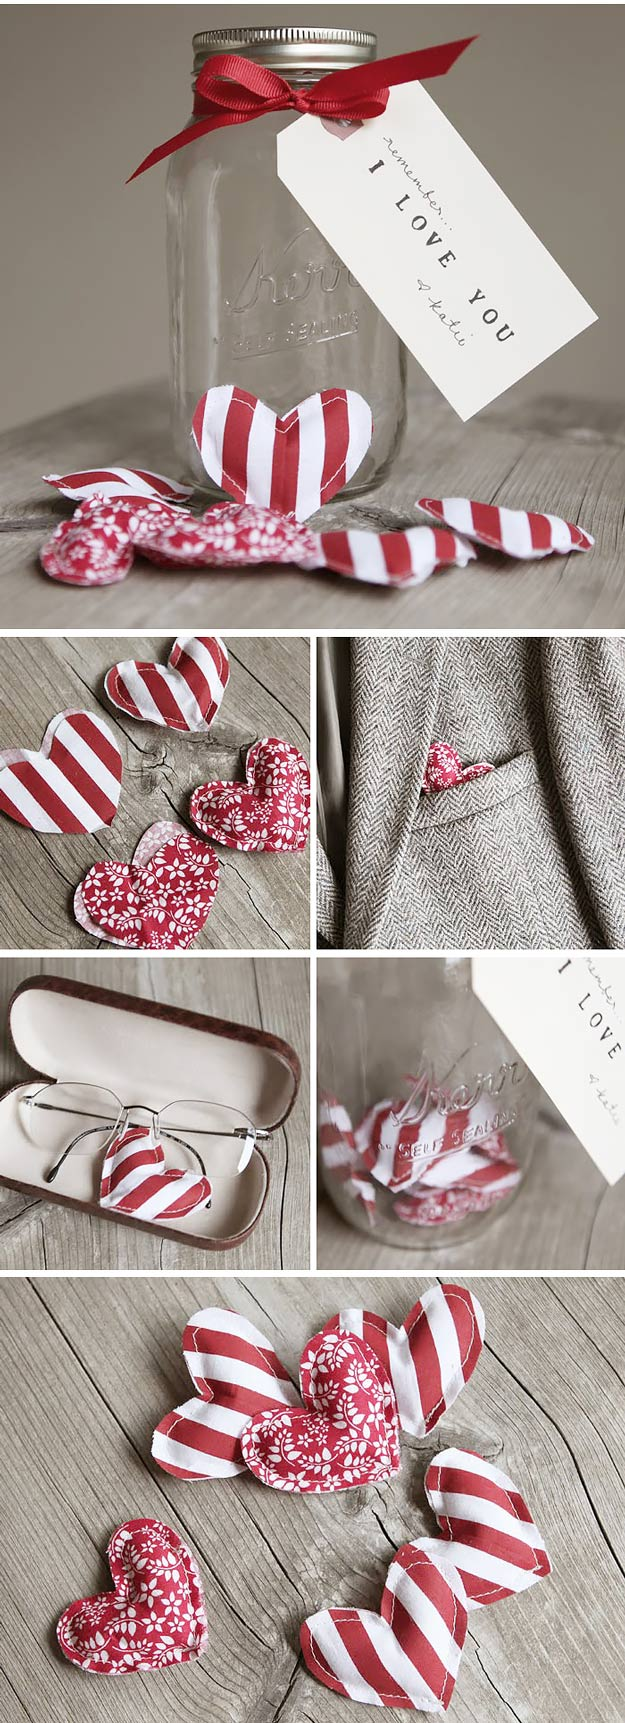 Mason Jar Valentine Gifts And Crafts | DIY Ideas For Valentines Day For  Cute Gift Giving